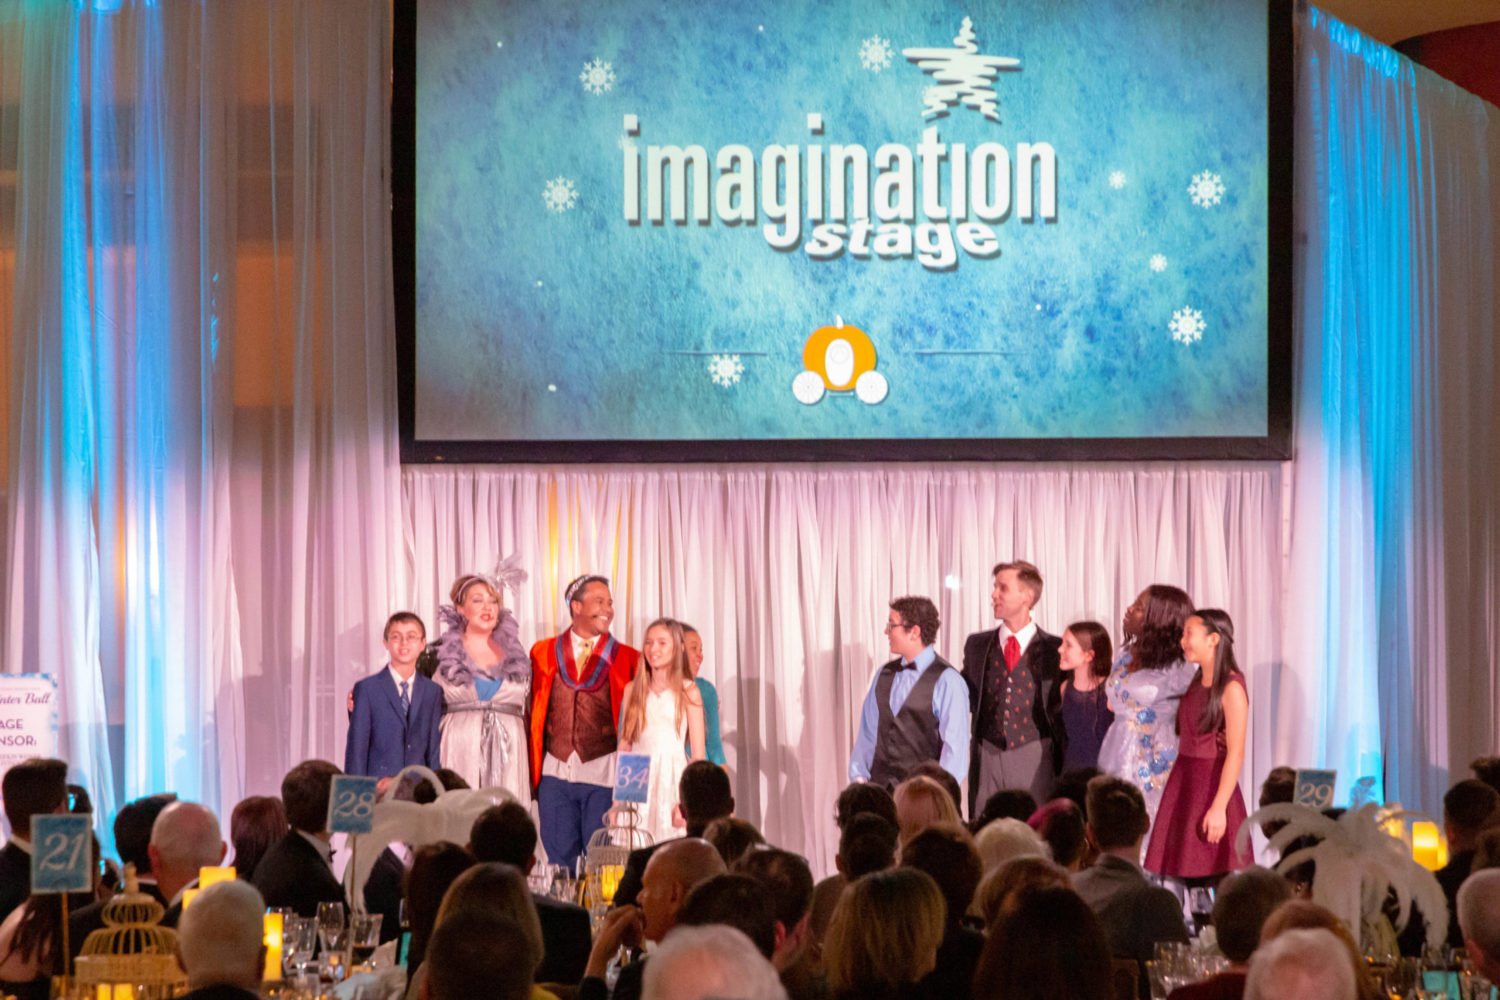 IMAGINATION STAGE 40TH ANNIVERSARY GALA: CELEBRATE THE PAST, CREATE THE FUTURE